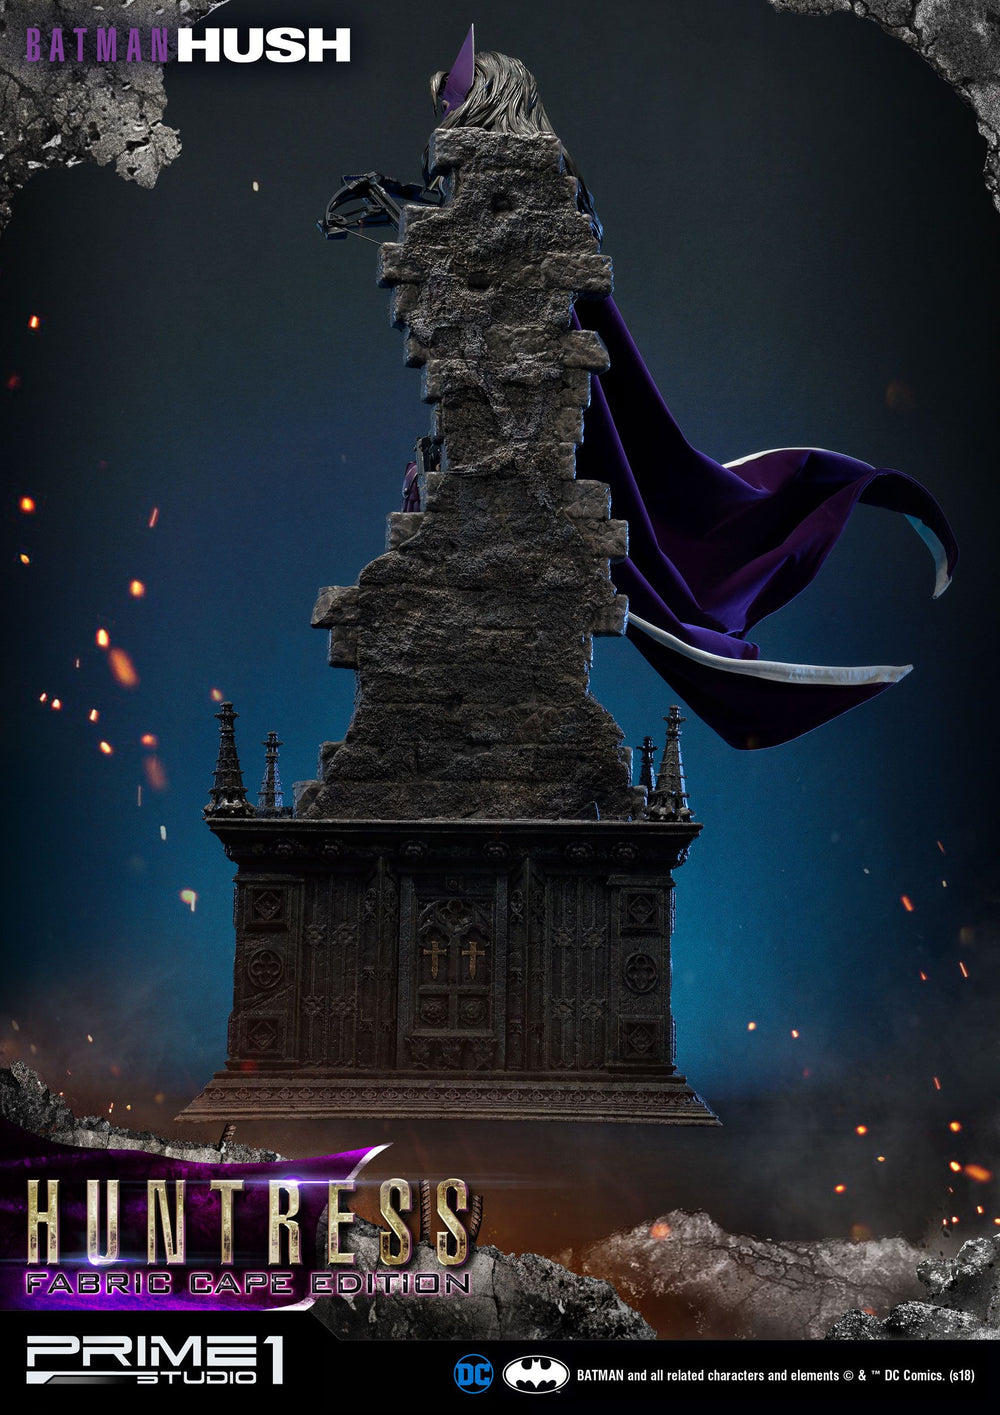 Prime 1 Studio Batman Hush Huntress Fabric Cape Edition 1/3 Statue